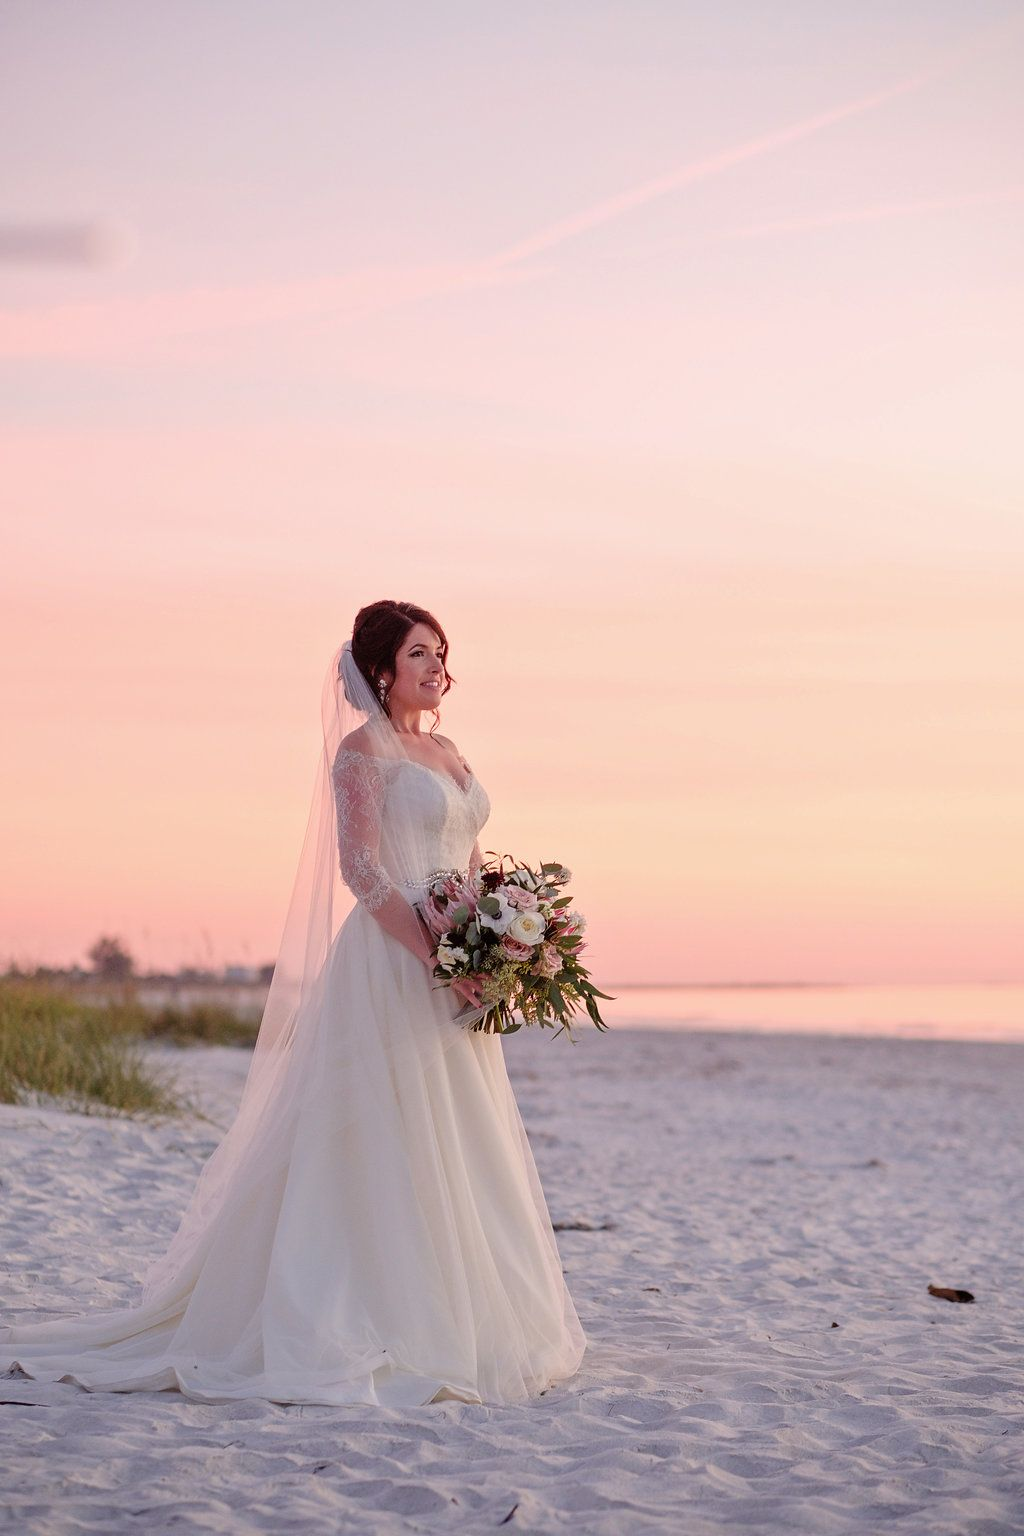 aa474fc750 Outdoor Beach Sunset Bridal Portrait in A Line Wedding Dress with White,  Pink, and Burgundy with Greenery Bouquet | St Petersburg Wedding  Photographer Marc ...